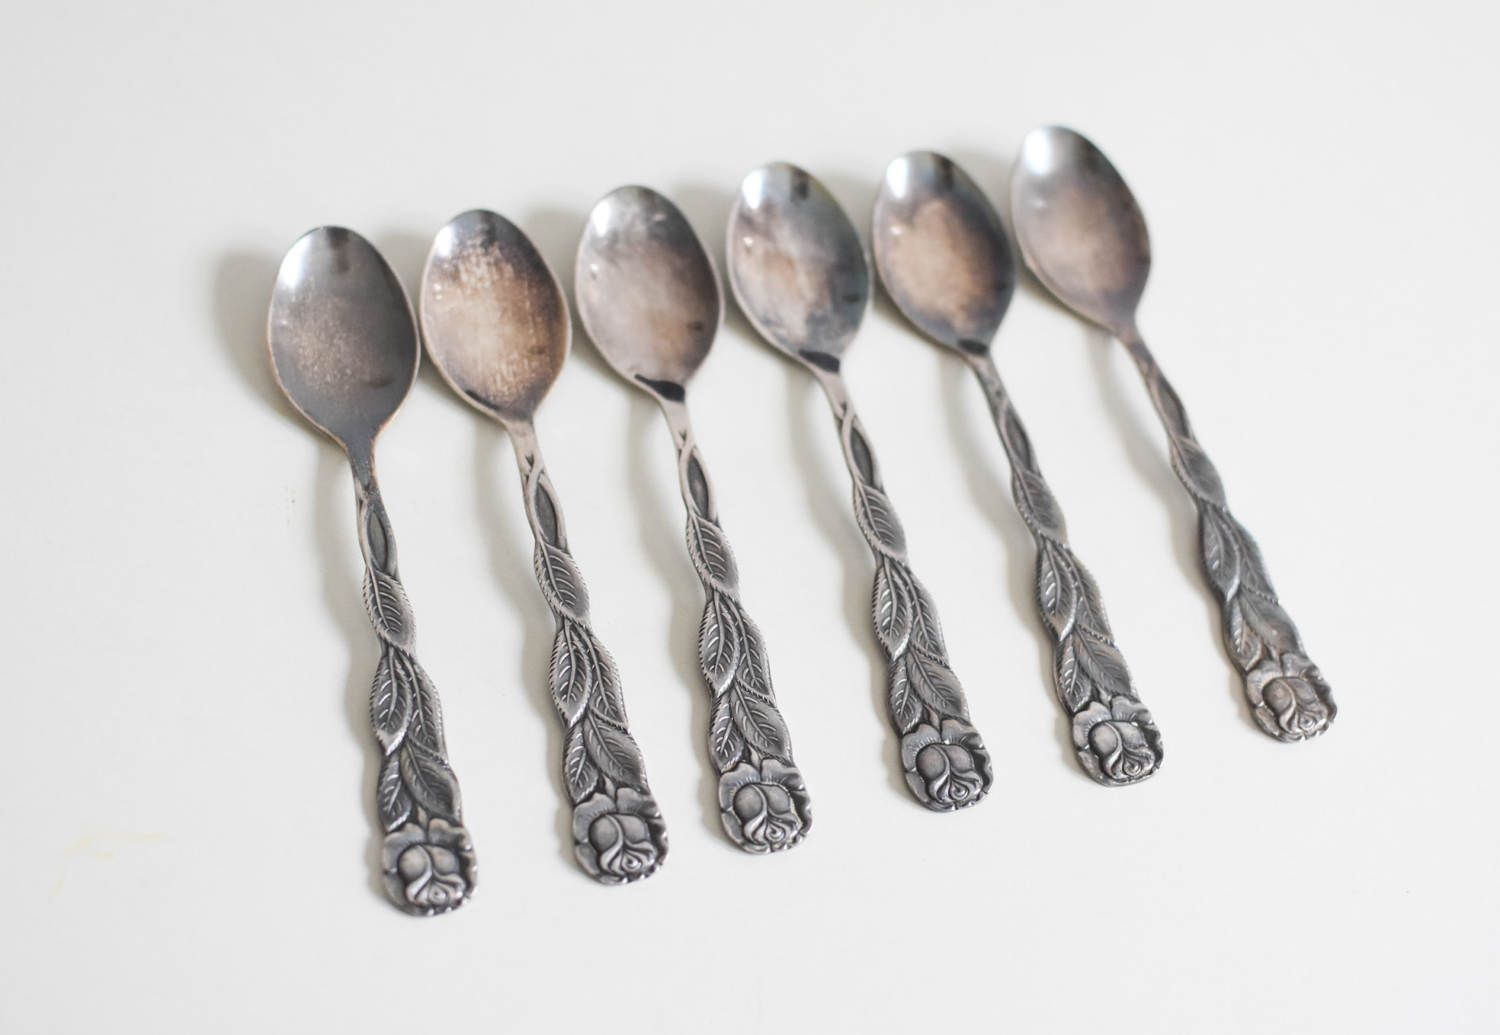 Kleine Löffel Hildesheimer Rose Spoons Coffee Spoons Rose Decor Silver Plated